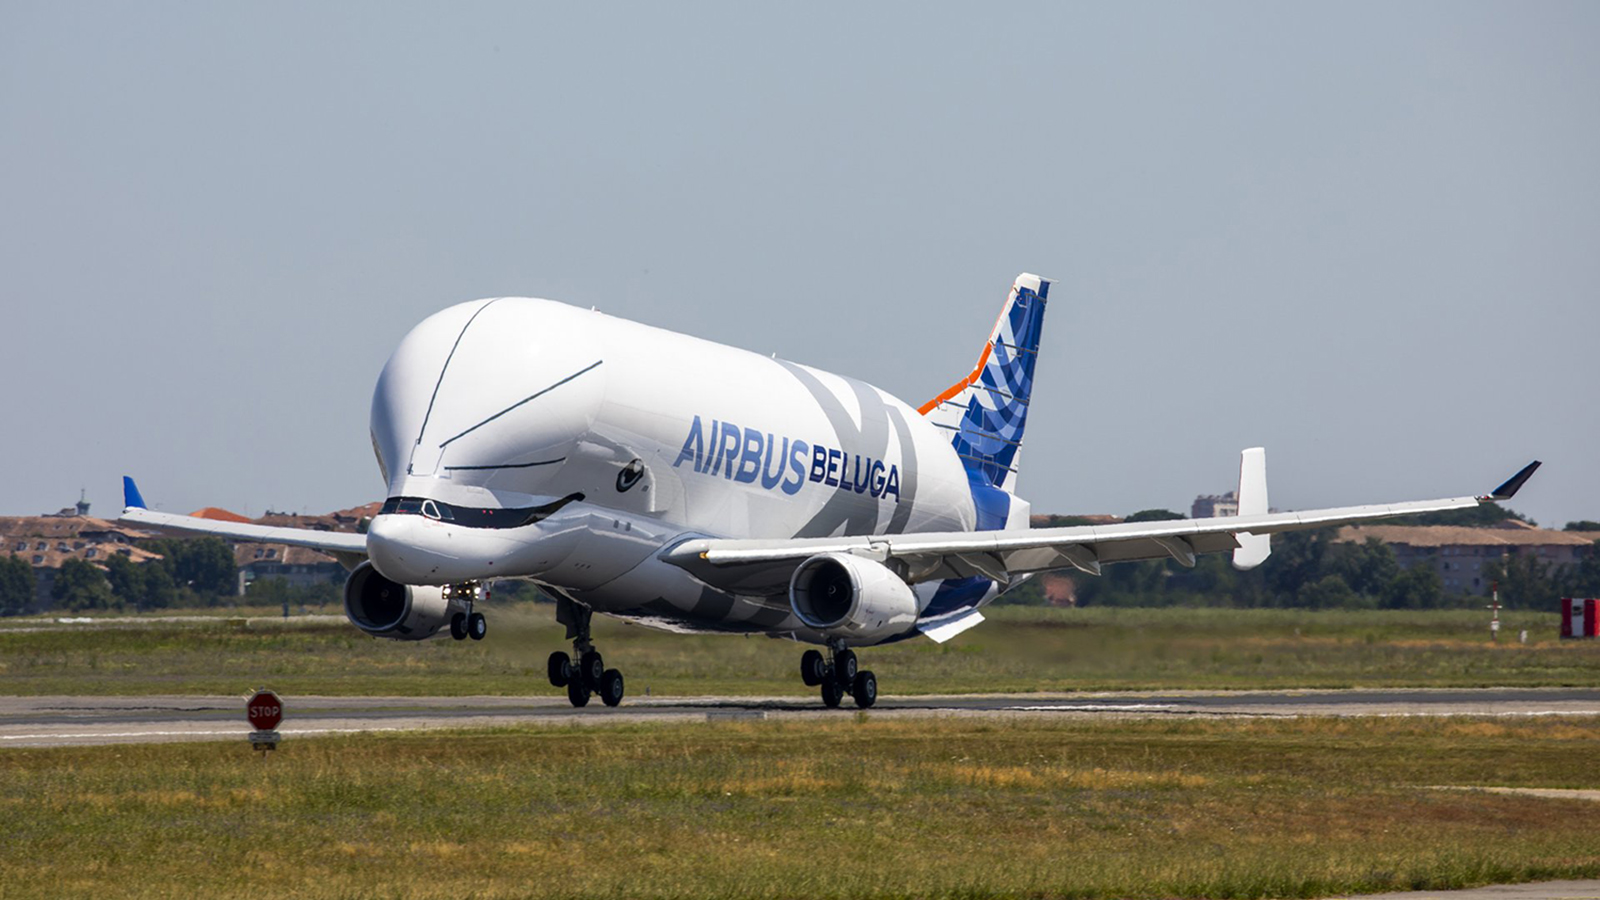 BelugaXL completes first test flight in France